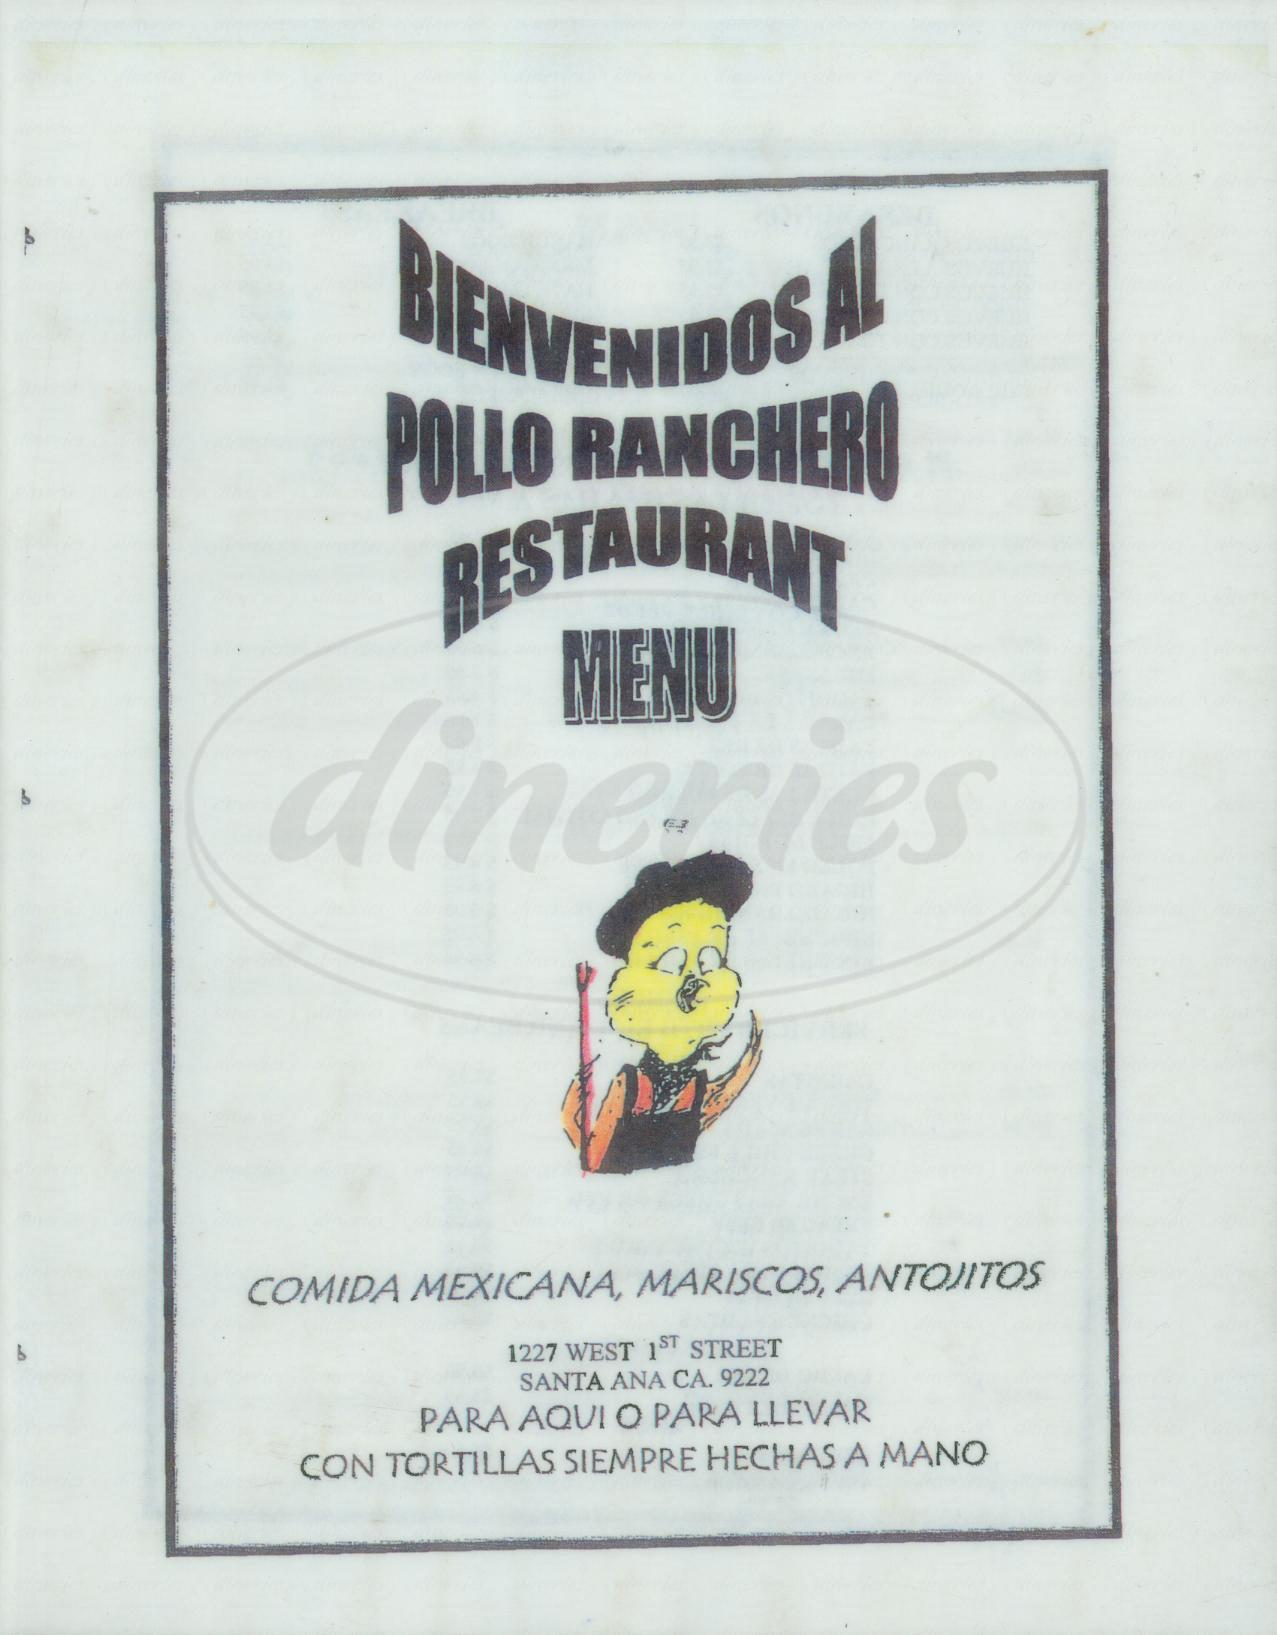 menu for Pollo Ranchero Restaurant